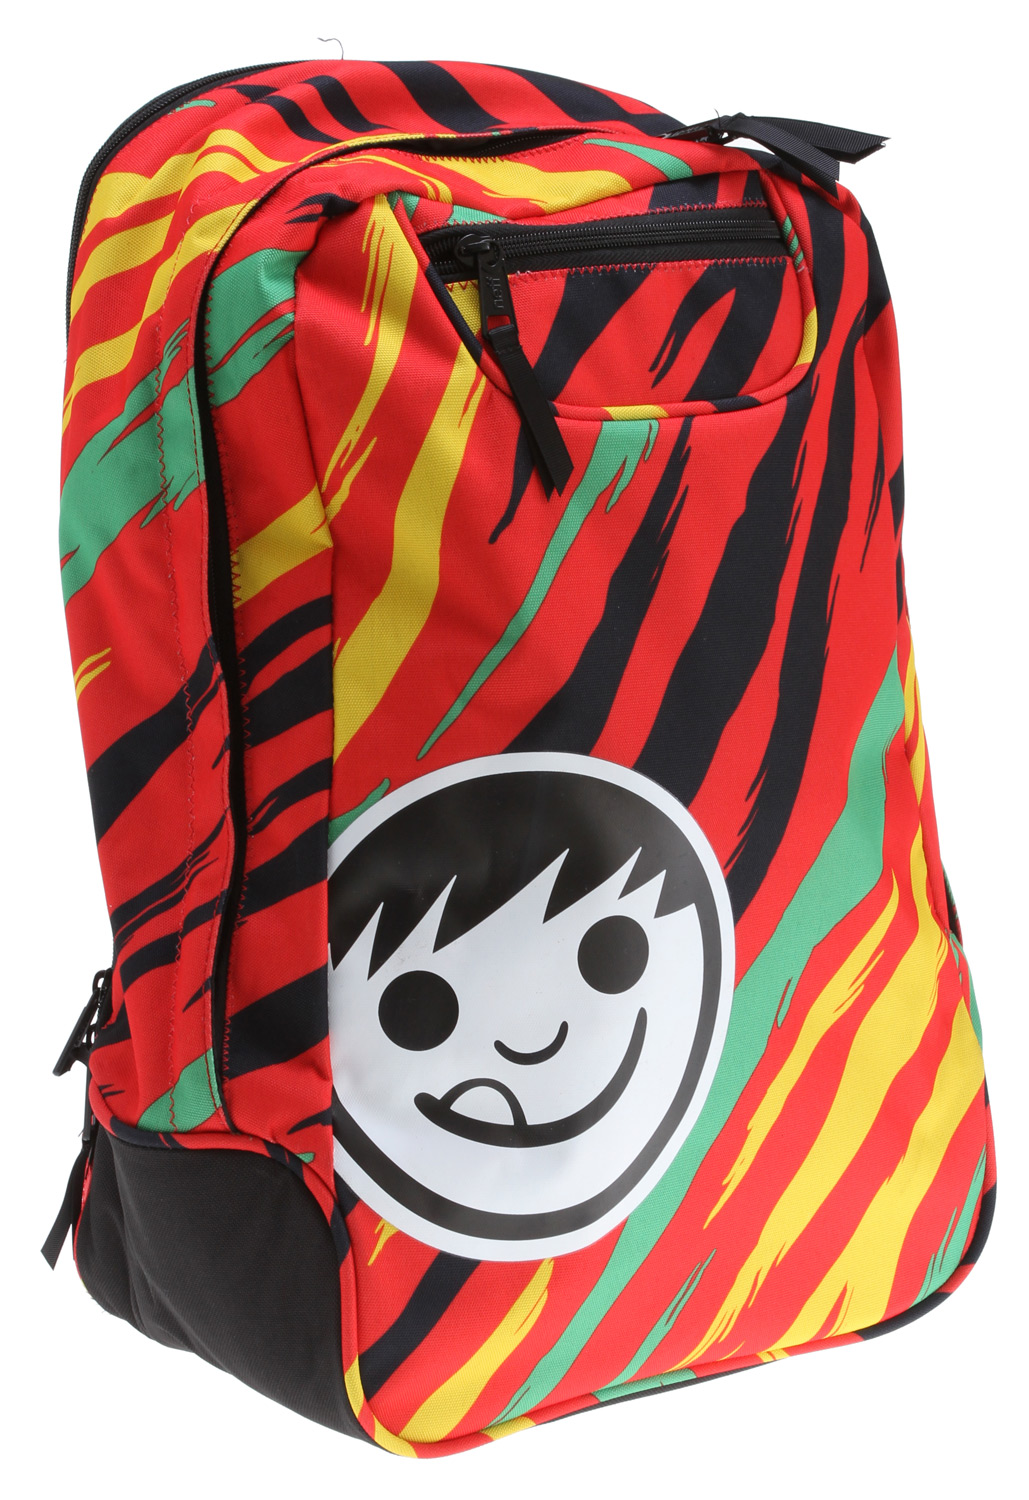 Skateboard Key Features of the Neff Kruzer Backpack: 100% Polyester - $31.95